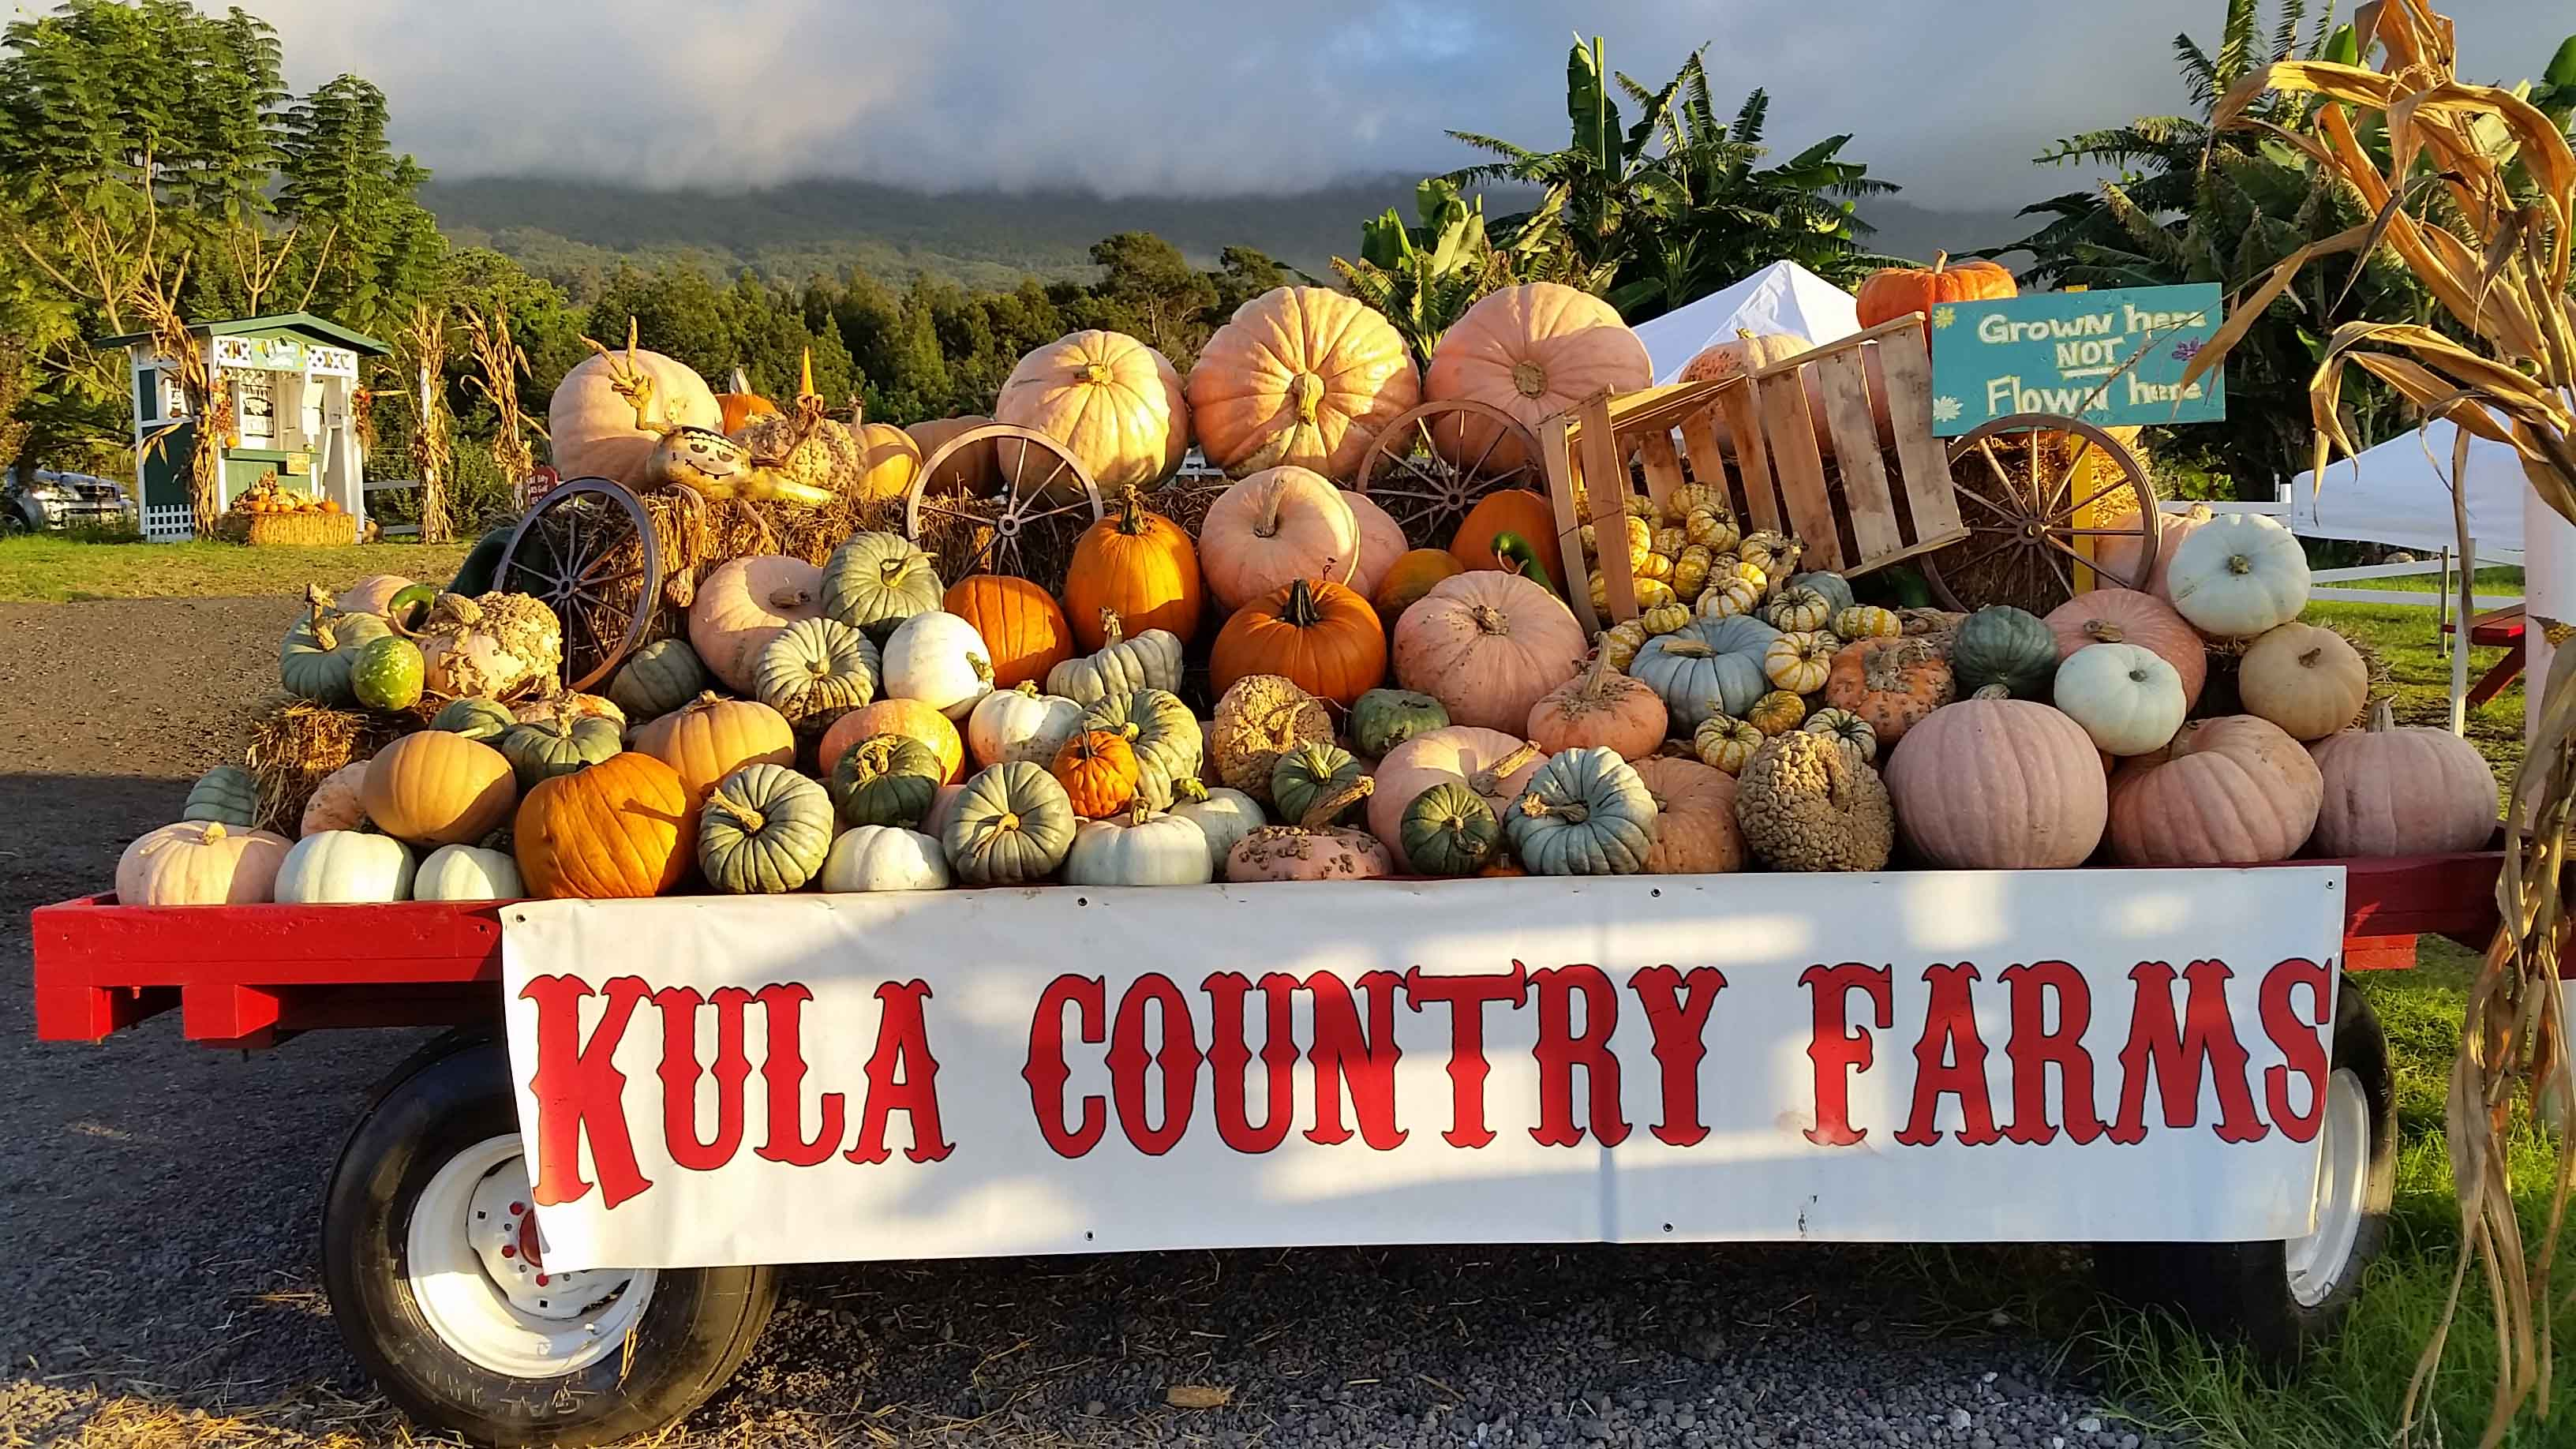 Bountiful display of pumpkins and gourds on truck flatbed